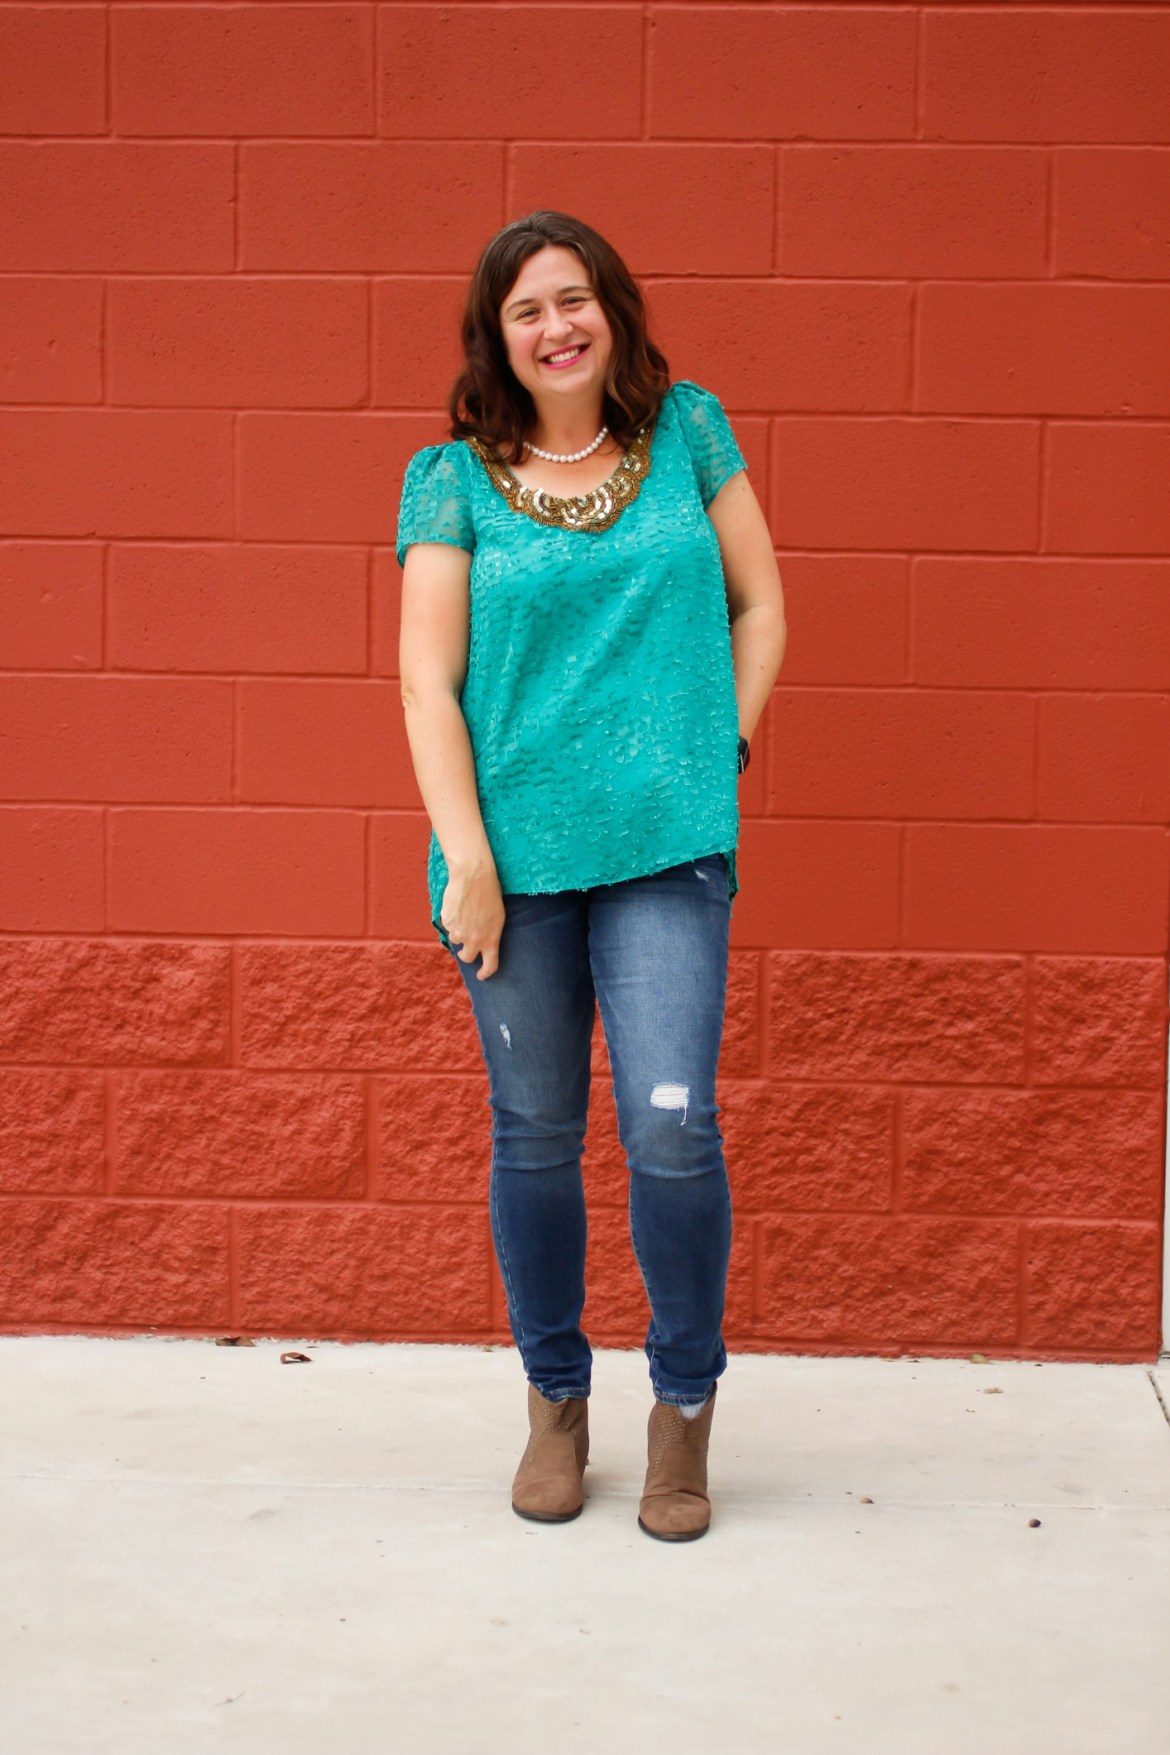 So love the colors together in this look.  The neckline on the shirt is neat, too